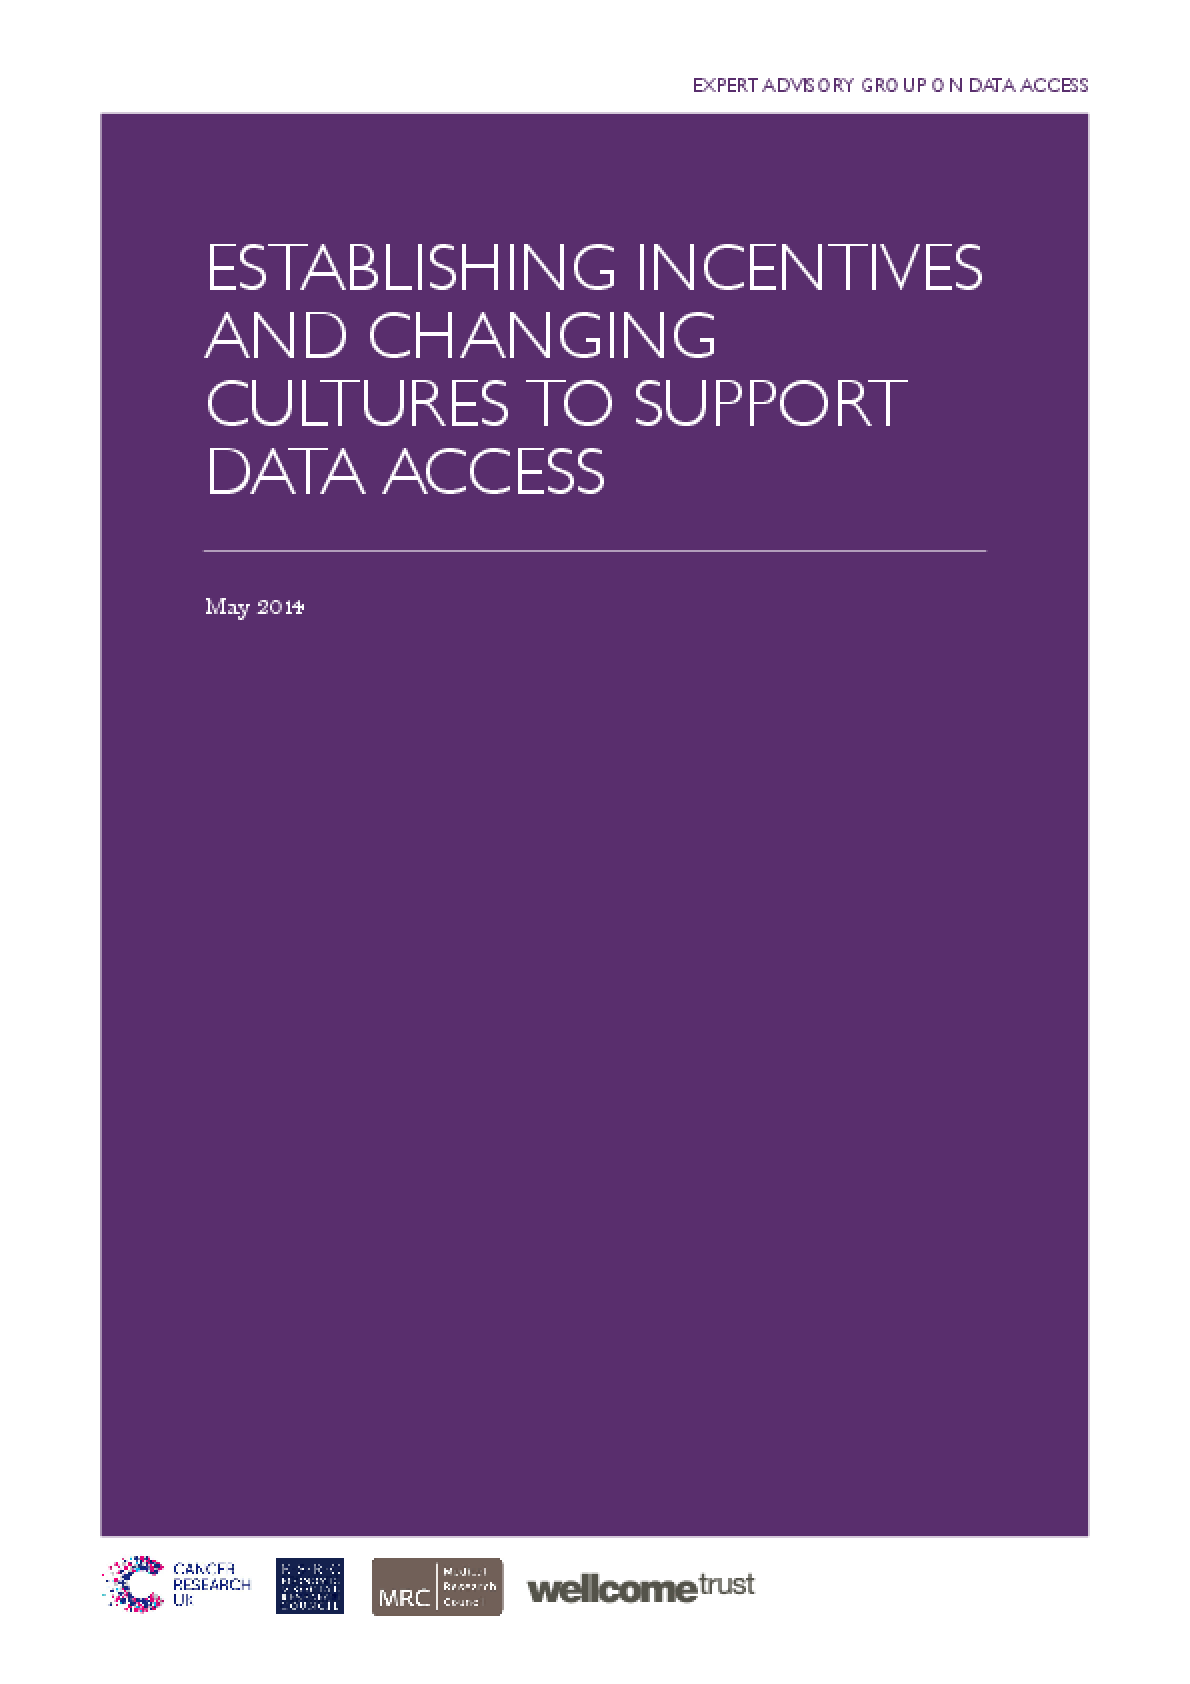 Establishing Incentives and Changing Cultures to Support Data Access